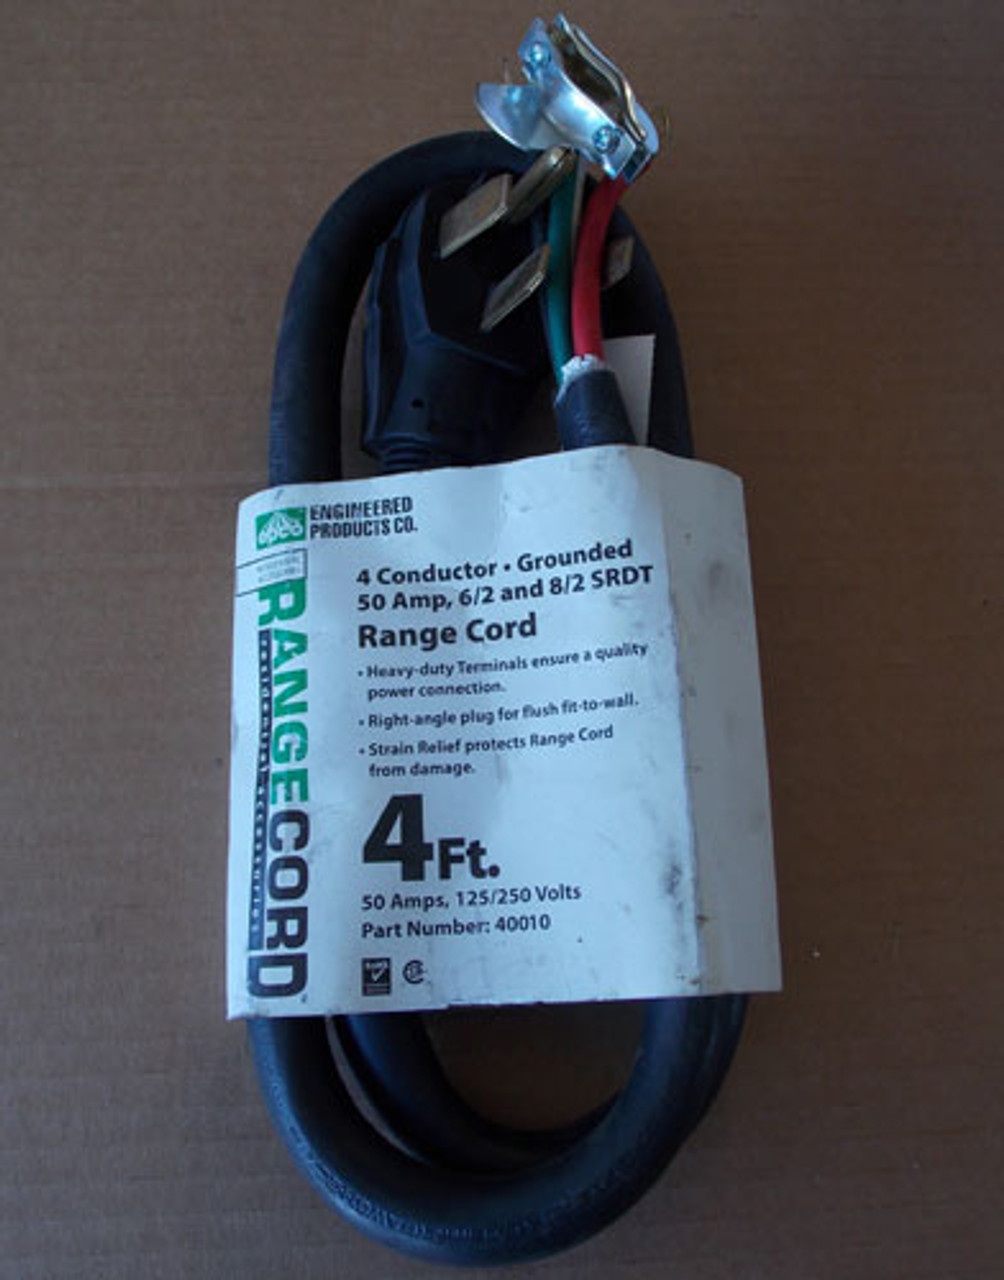 Engineered Products 40010 4Ft Range Cord 50A,125/250V 4 Conductor-Grounded